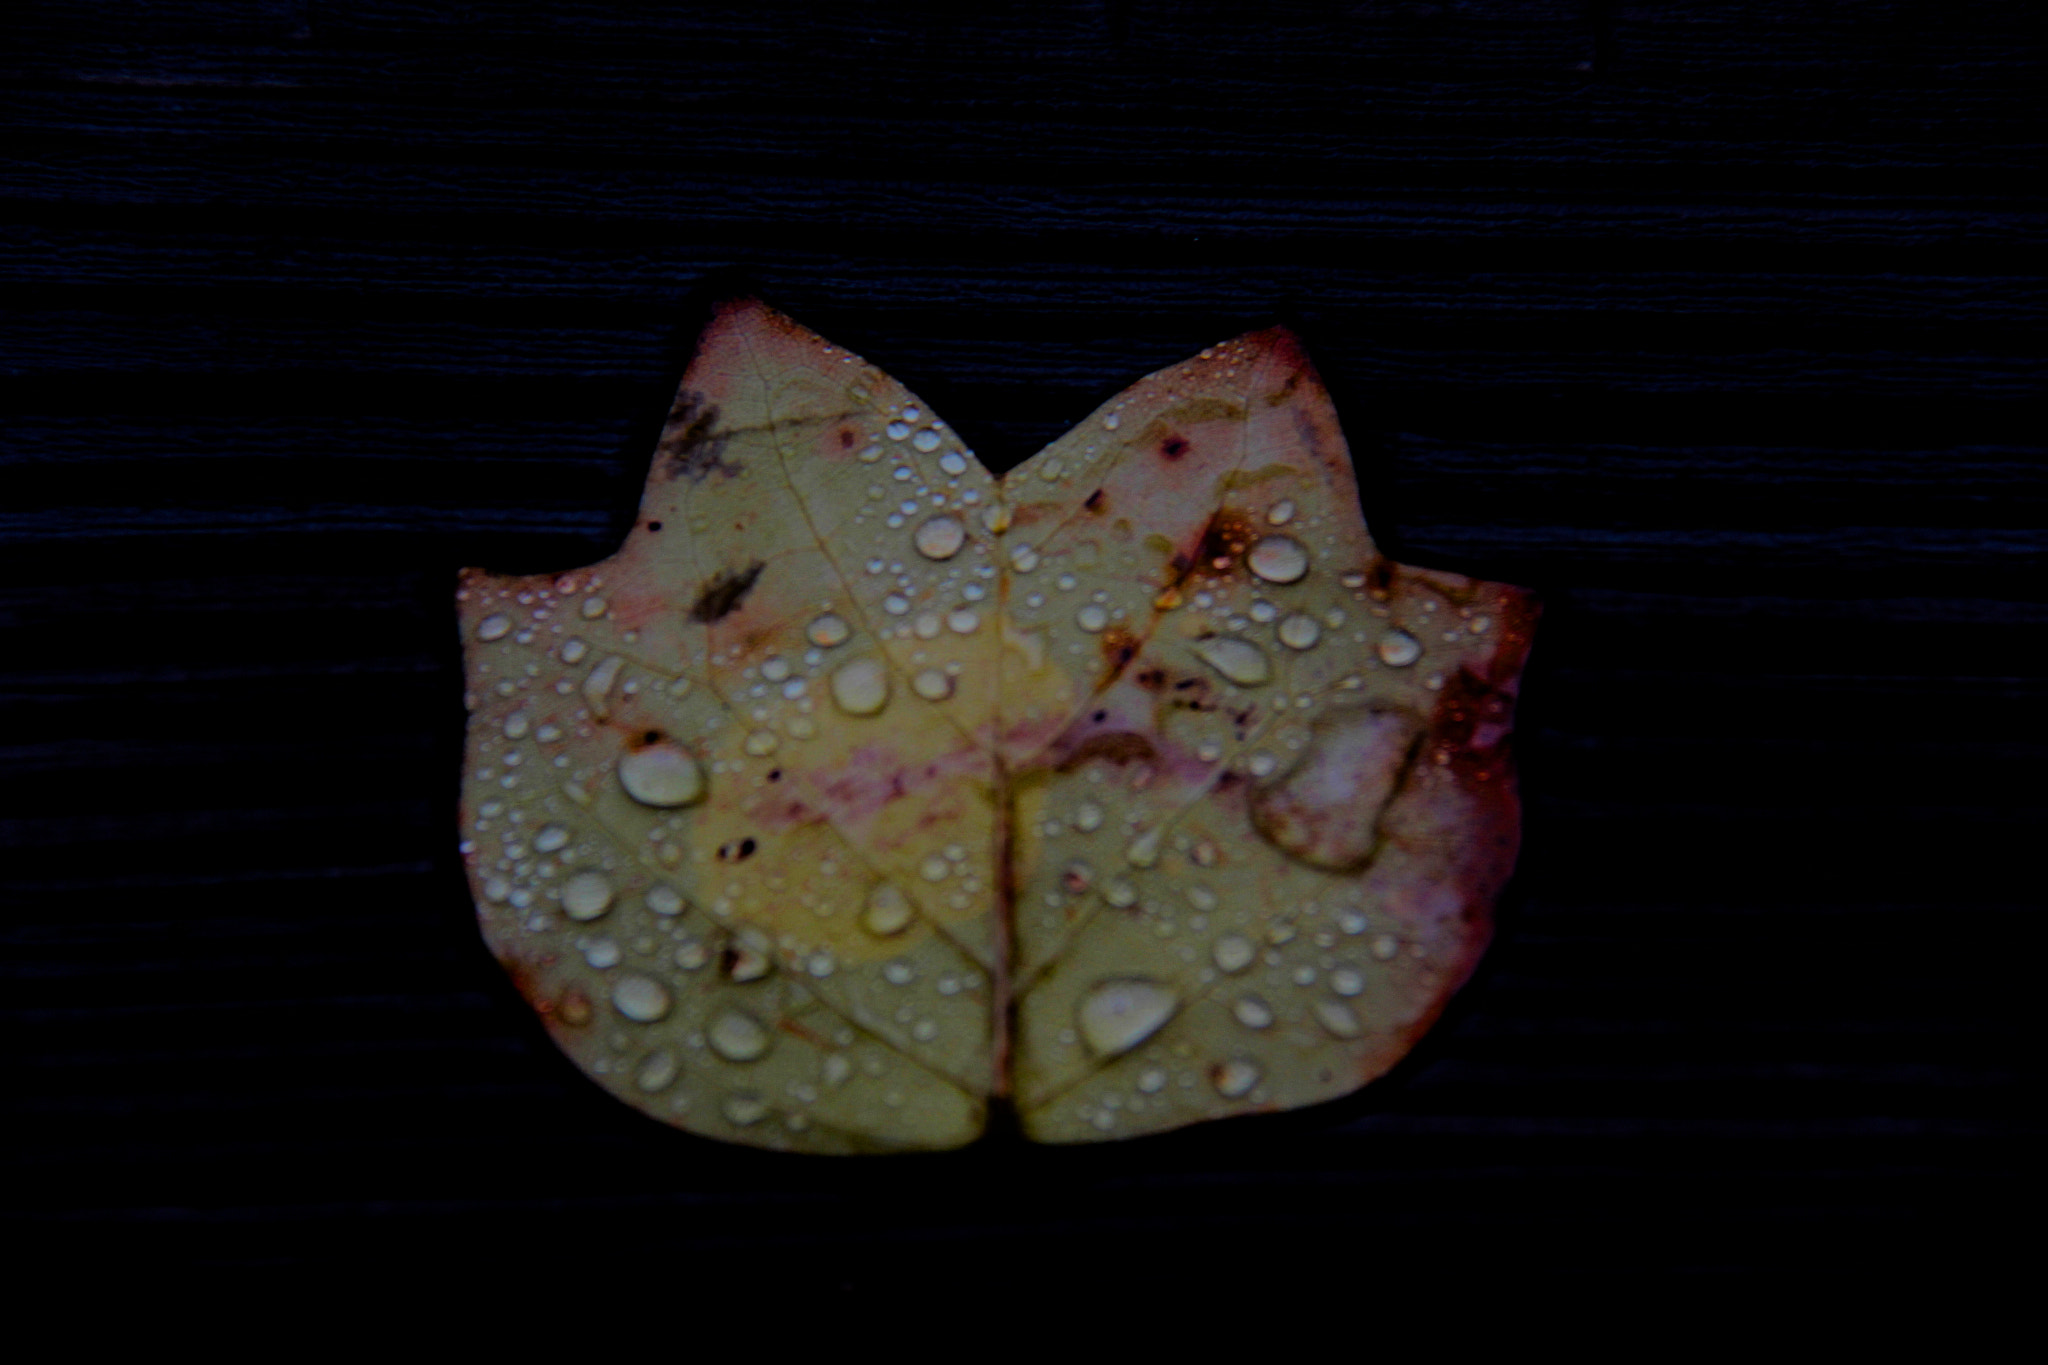 Photograph autumn leaf & water droplets by Rajkiran Ghanta on 500px